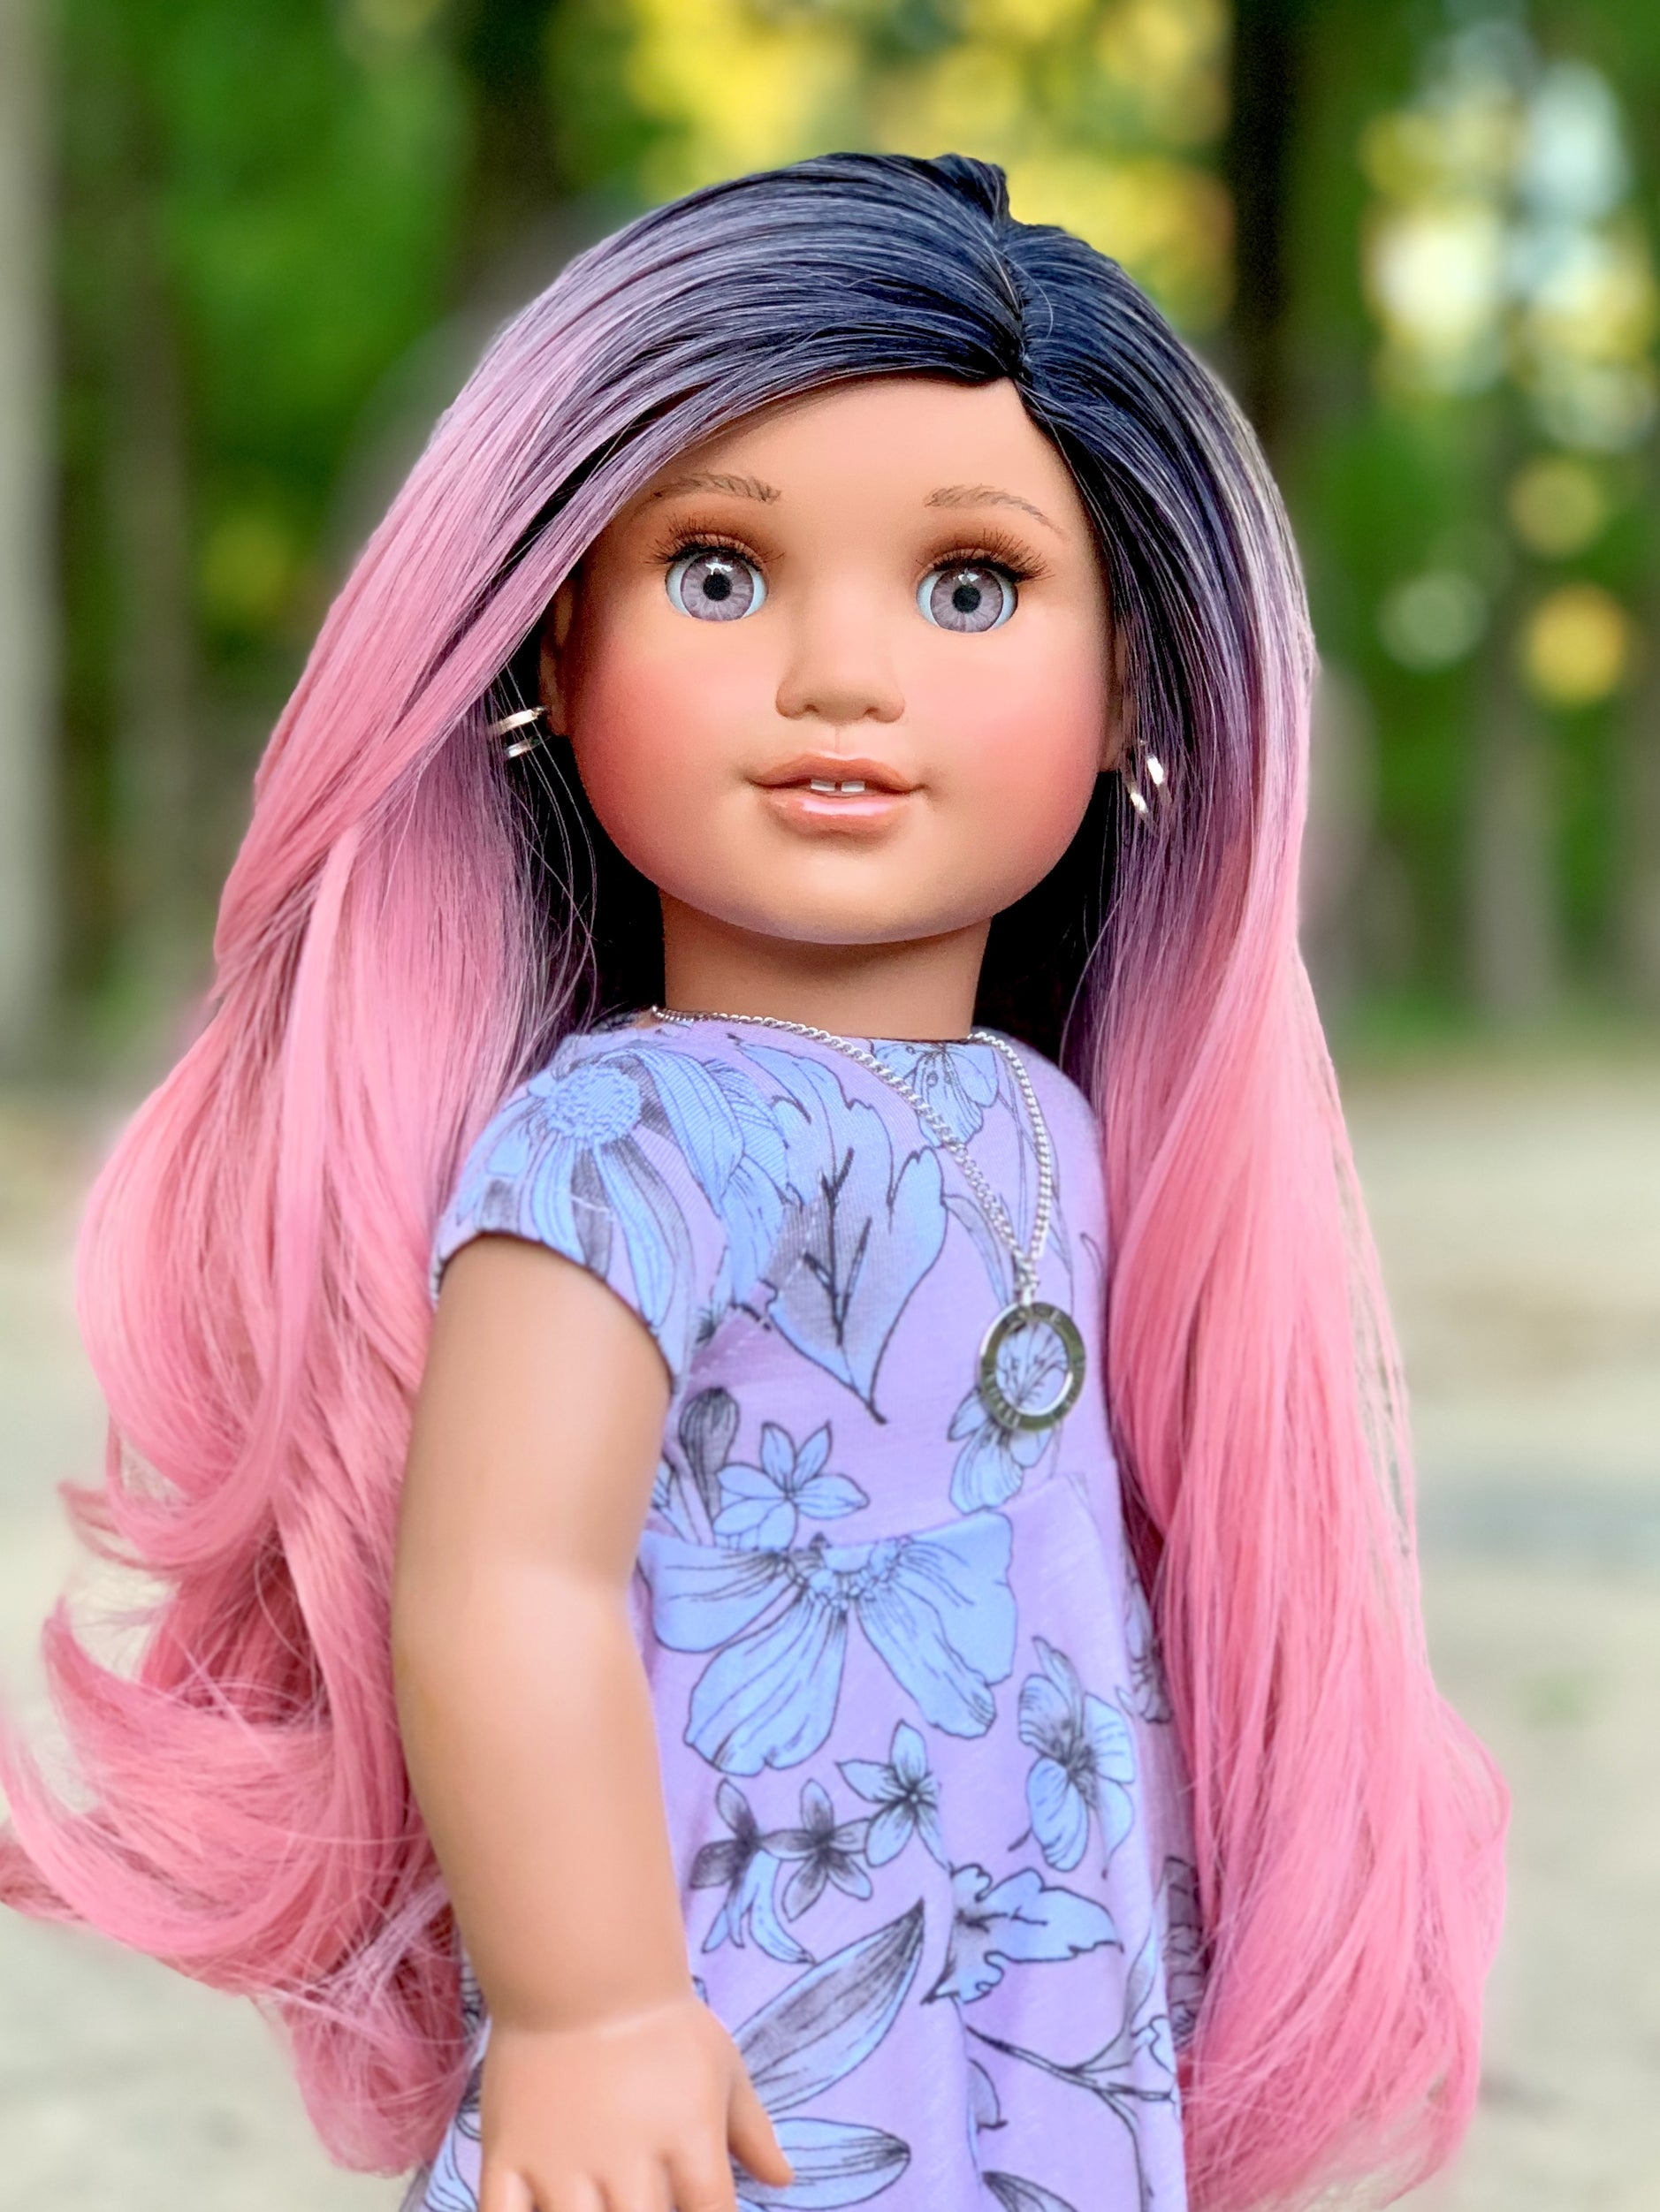 Zazou Dolls Exclusive Majesty WIG Unicorn Ombre Rose Blush for 18 Inch dolls such as OG and American Girl